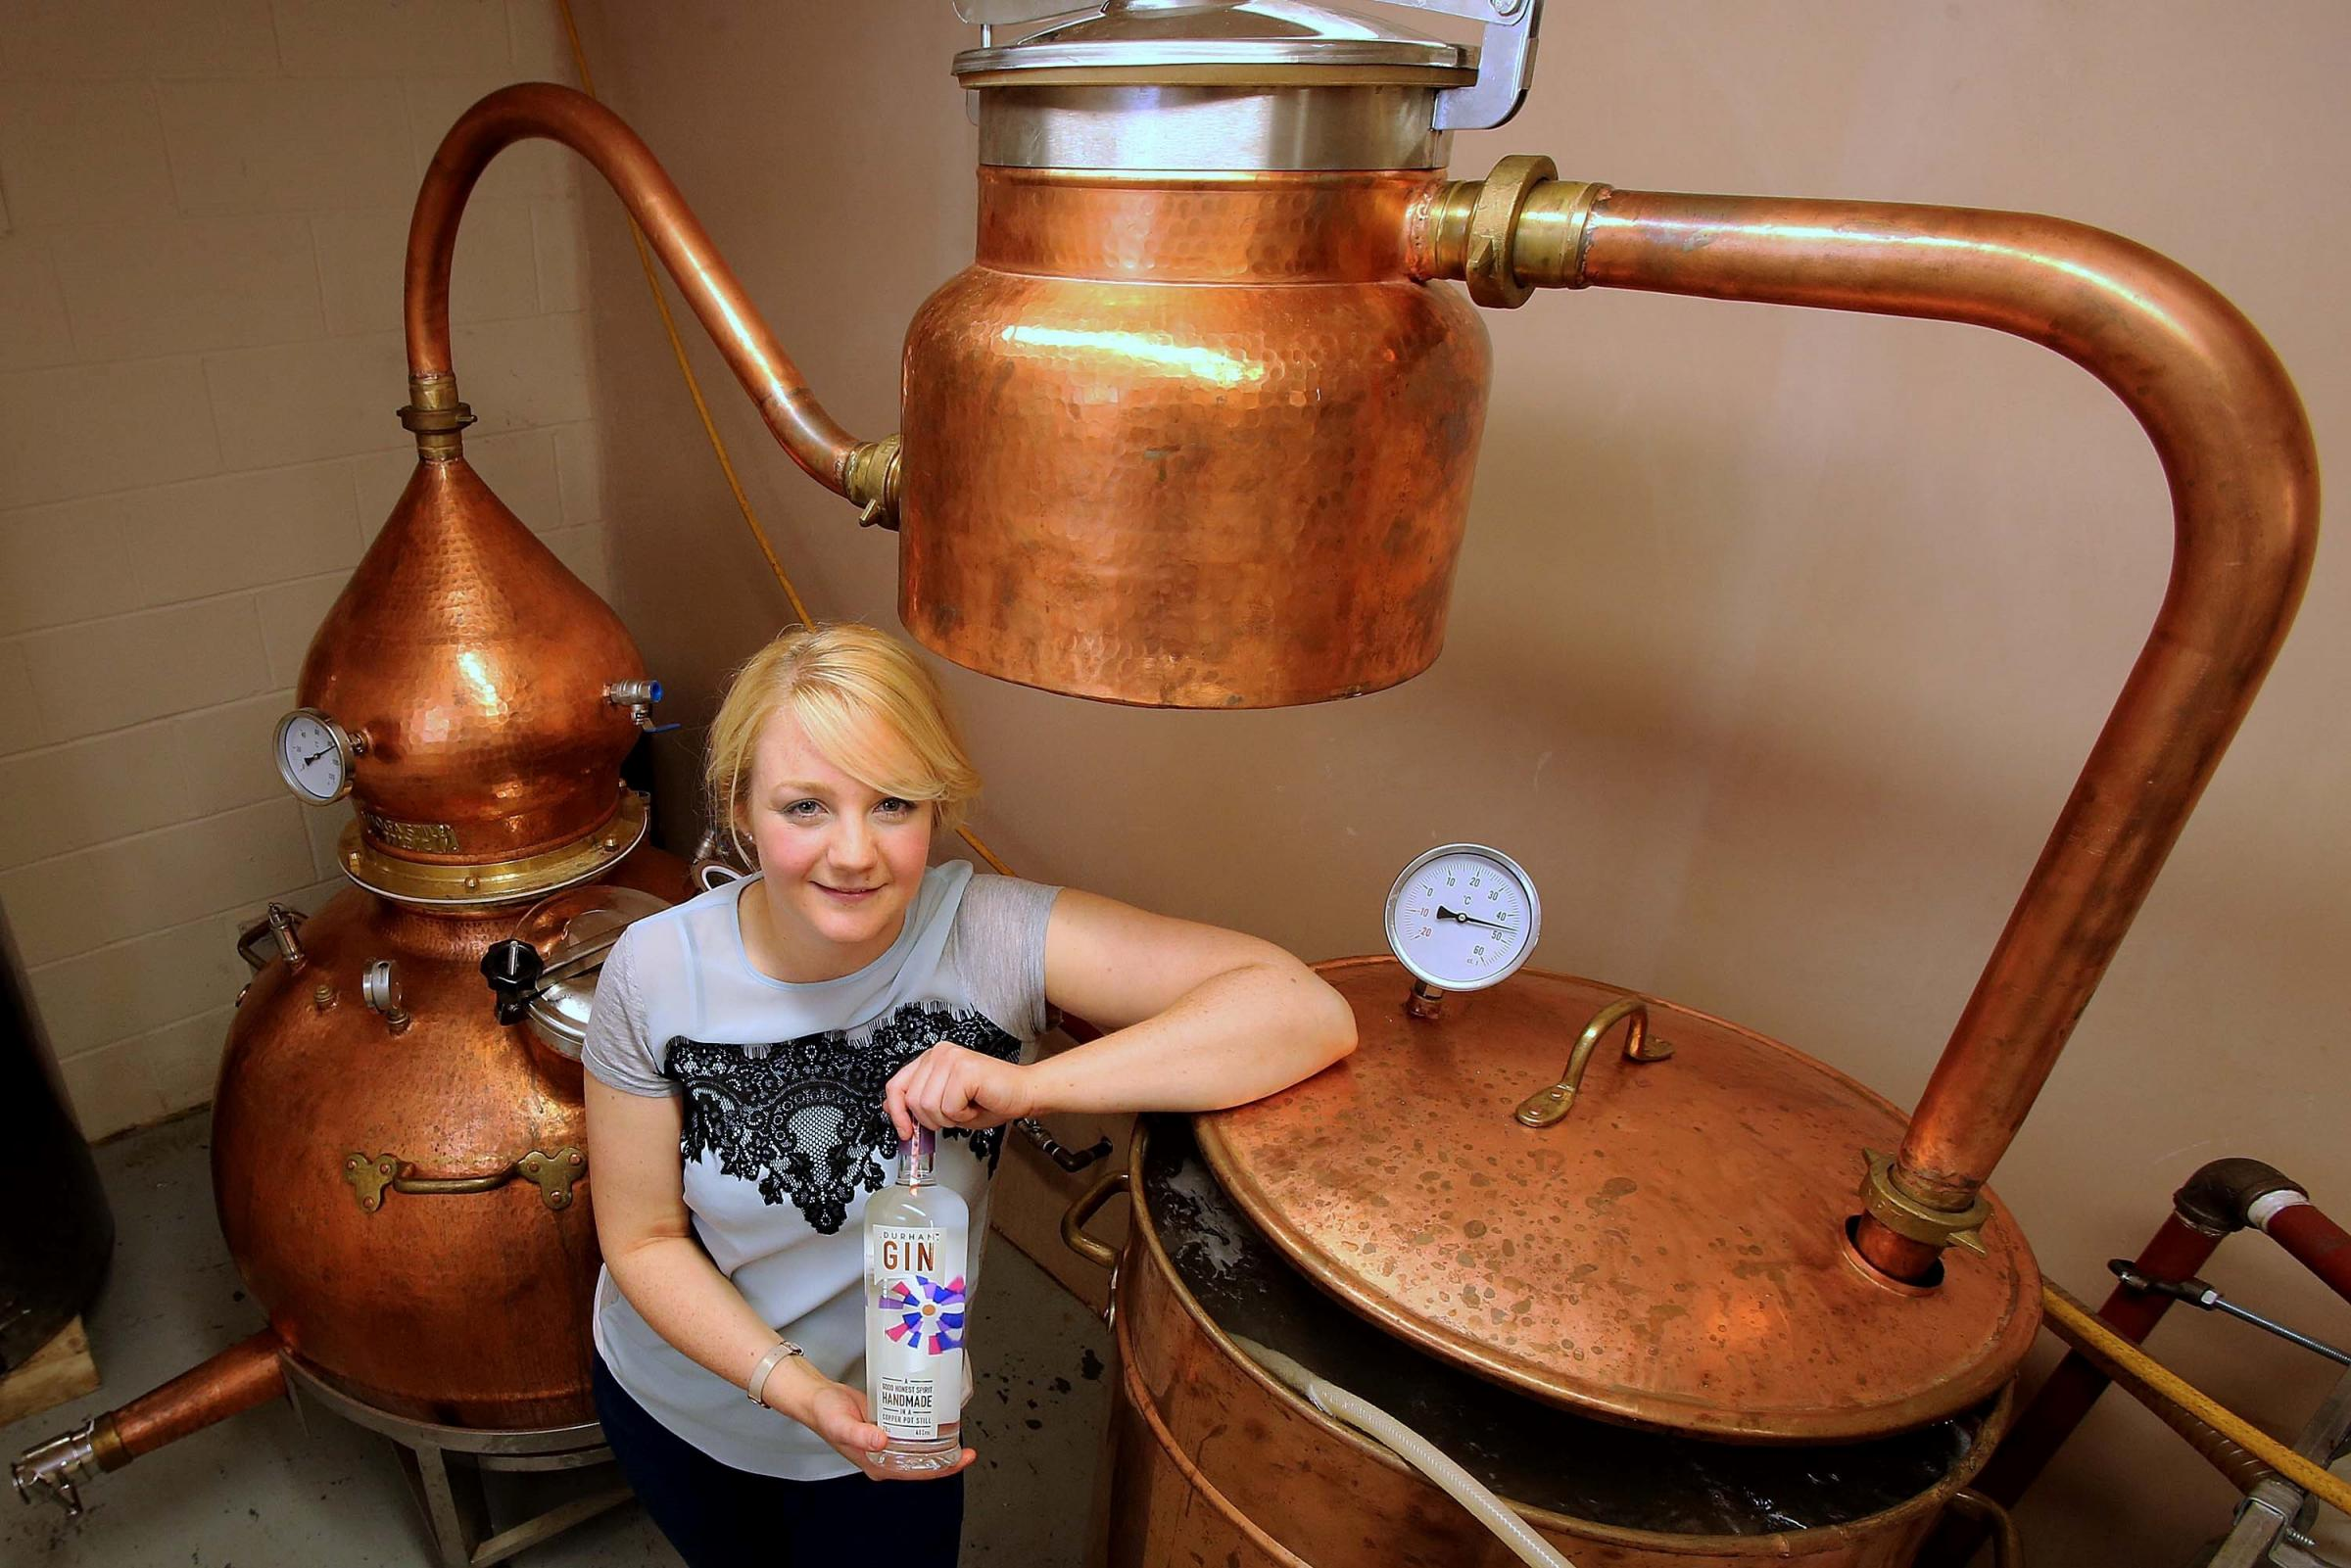 Cheers! Gin-maker Jess is toasting success